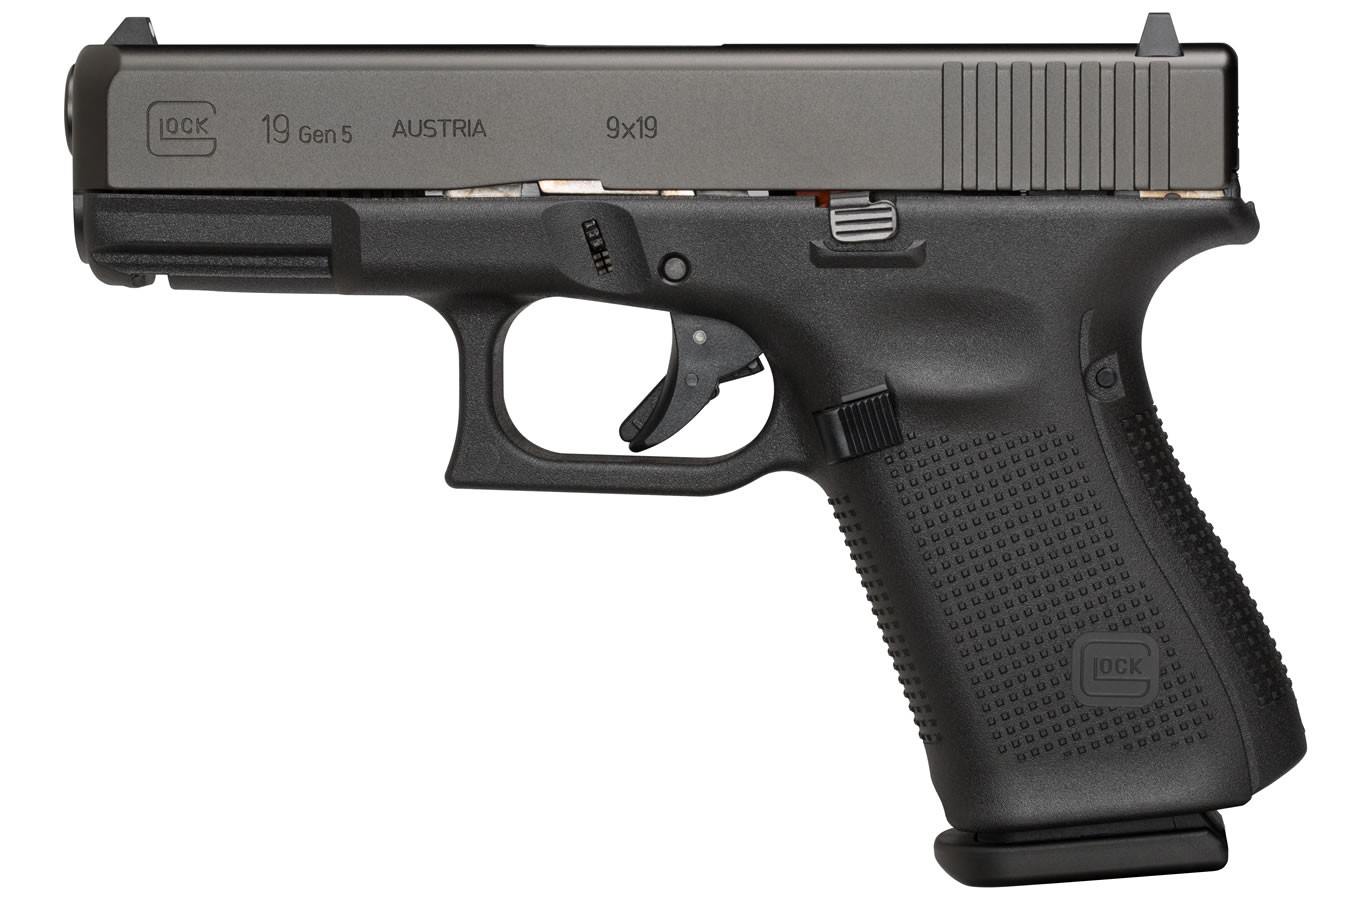 19 GEN5 9MM WITH FIXED SIGHTS (LE)